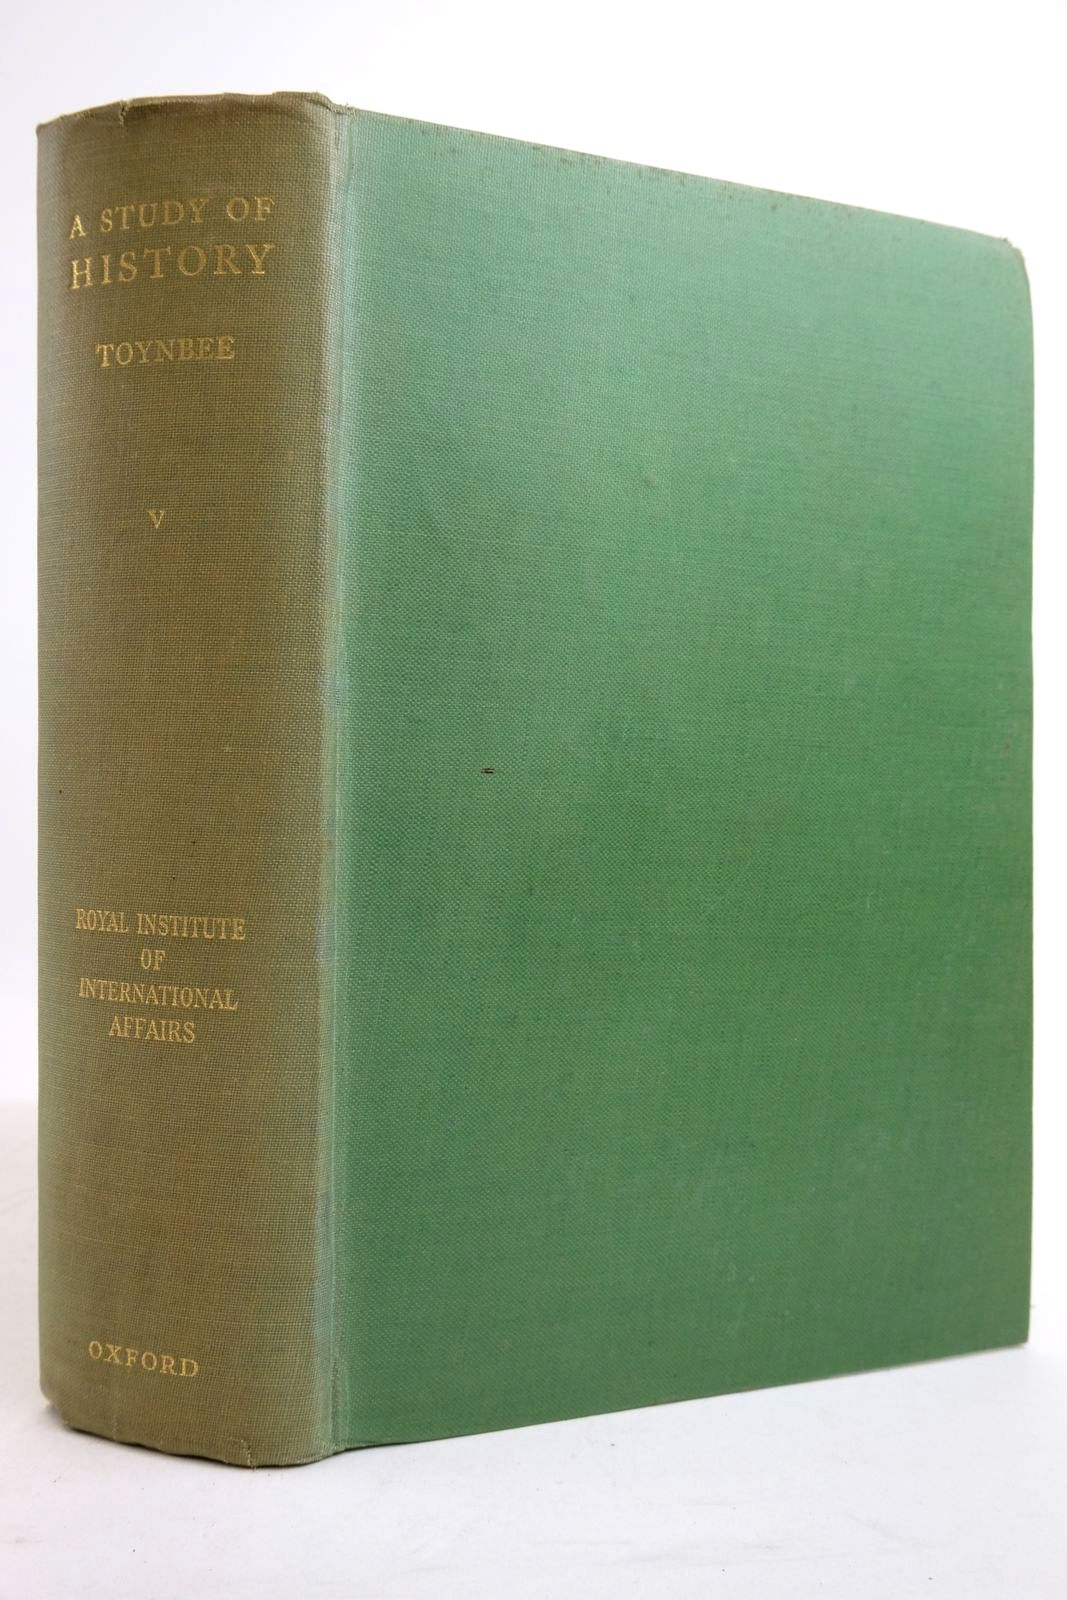 Photo of A STUDY OF HISTORY VOLUME V- Stock Number: 2134957